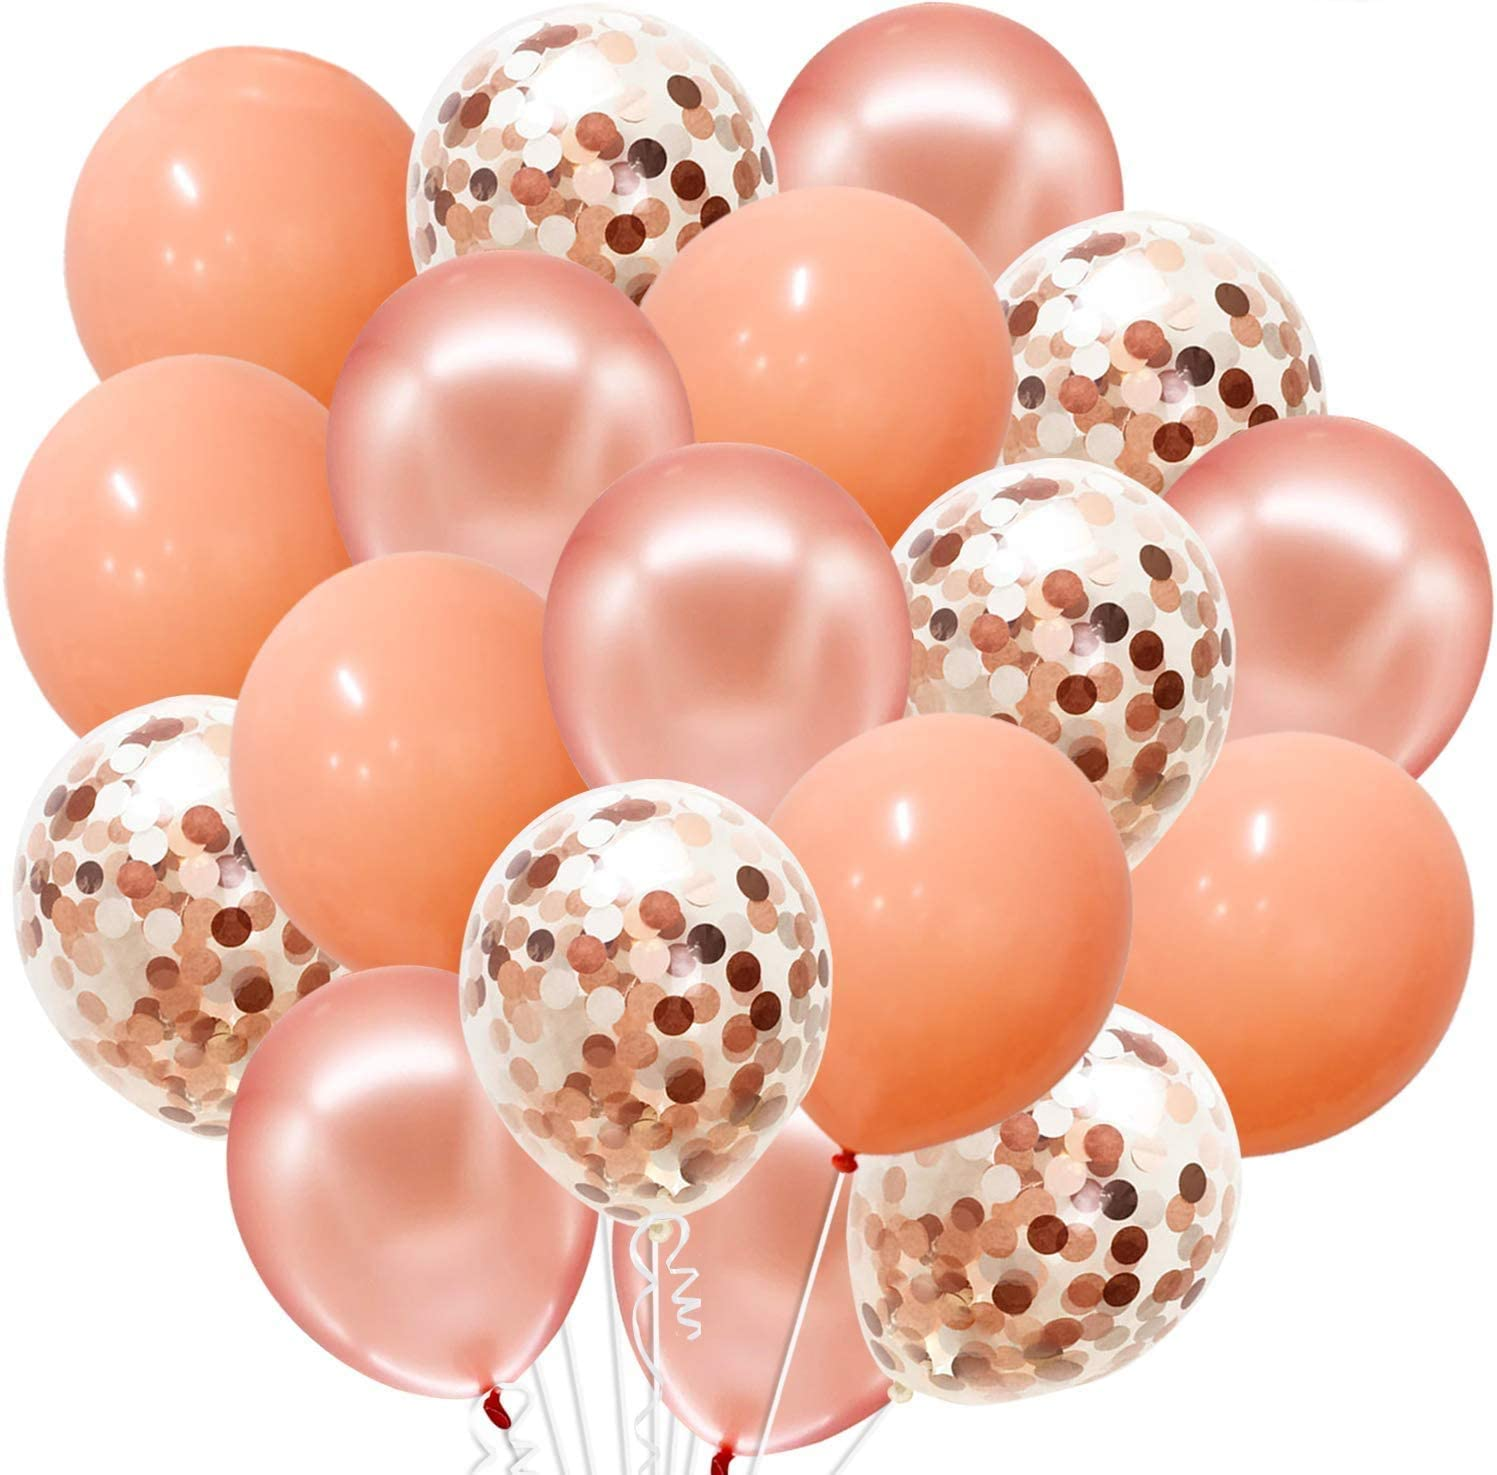 20 Ft String Included Rose Gold Foil Balloons POP FIZZ CLINK Same Day Shipping Monday-Saturday Blue Magenta Pink 16 Gold